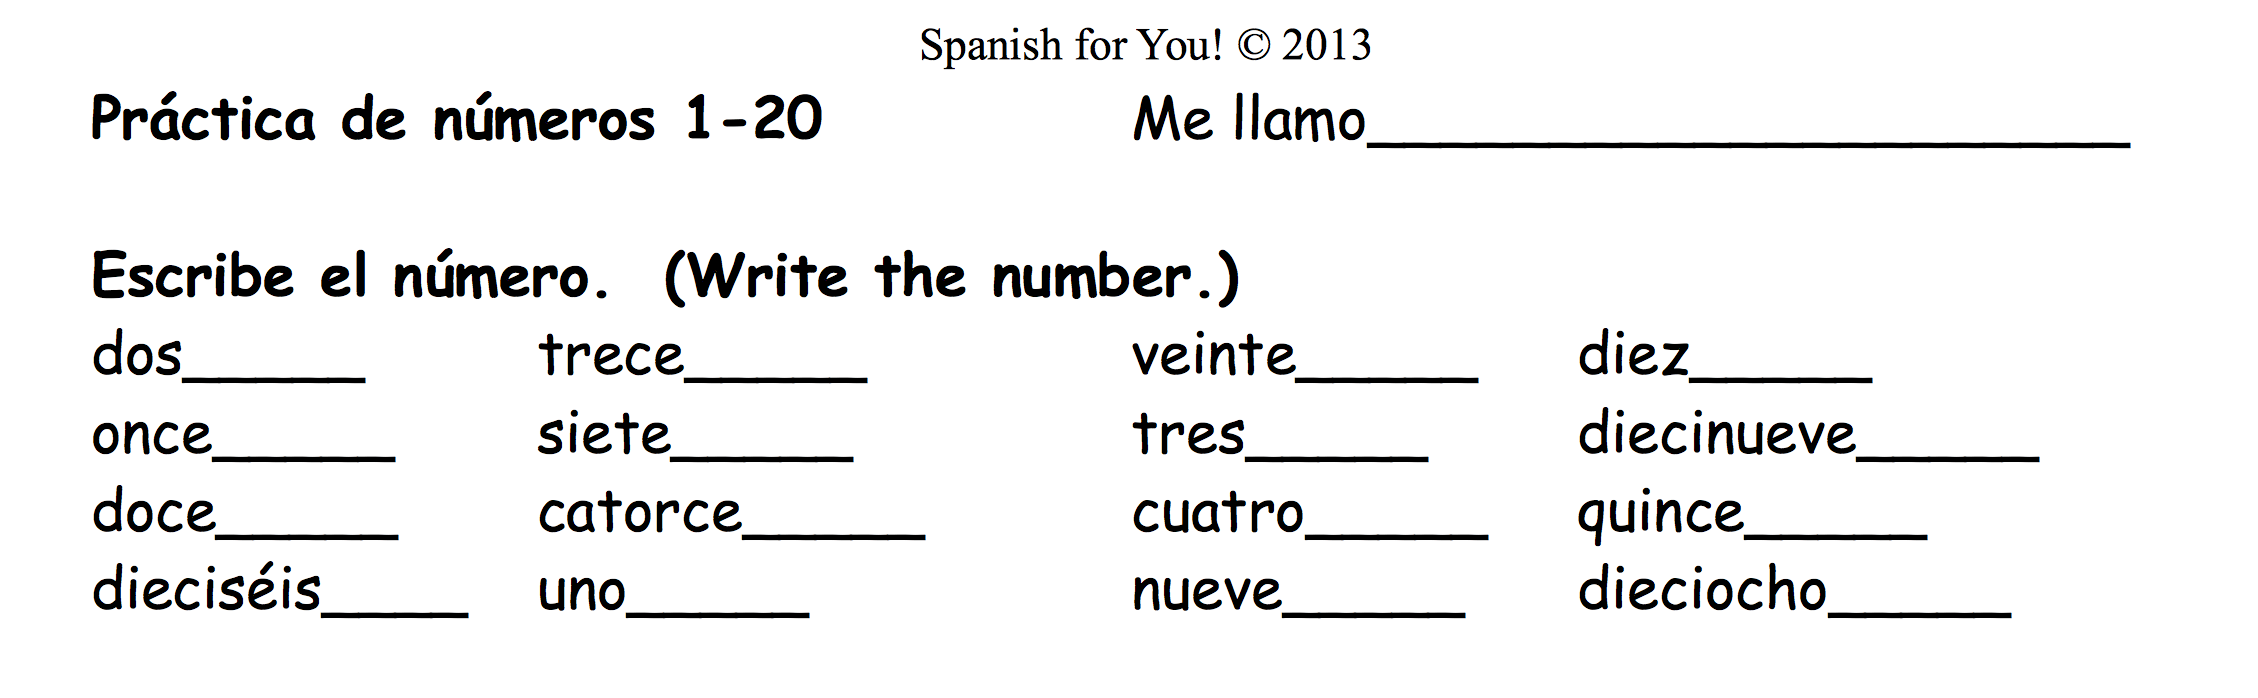 Printables Spanish Numbers Worksheet spanish homework worksheet view full image